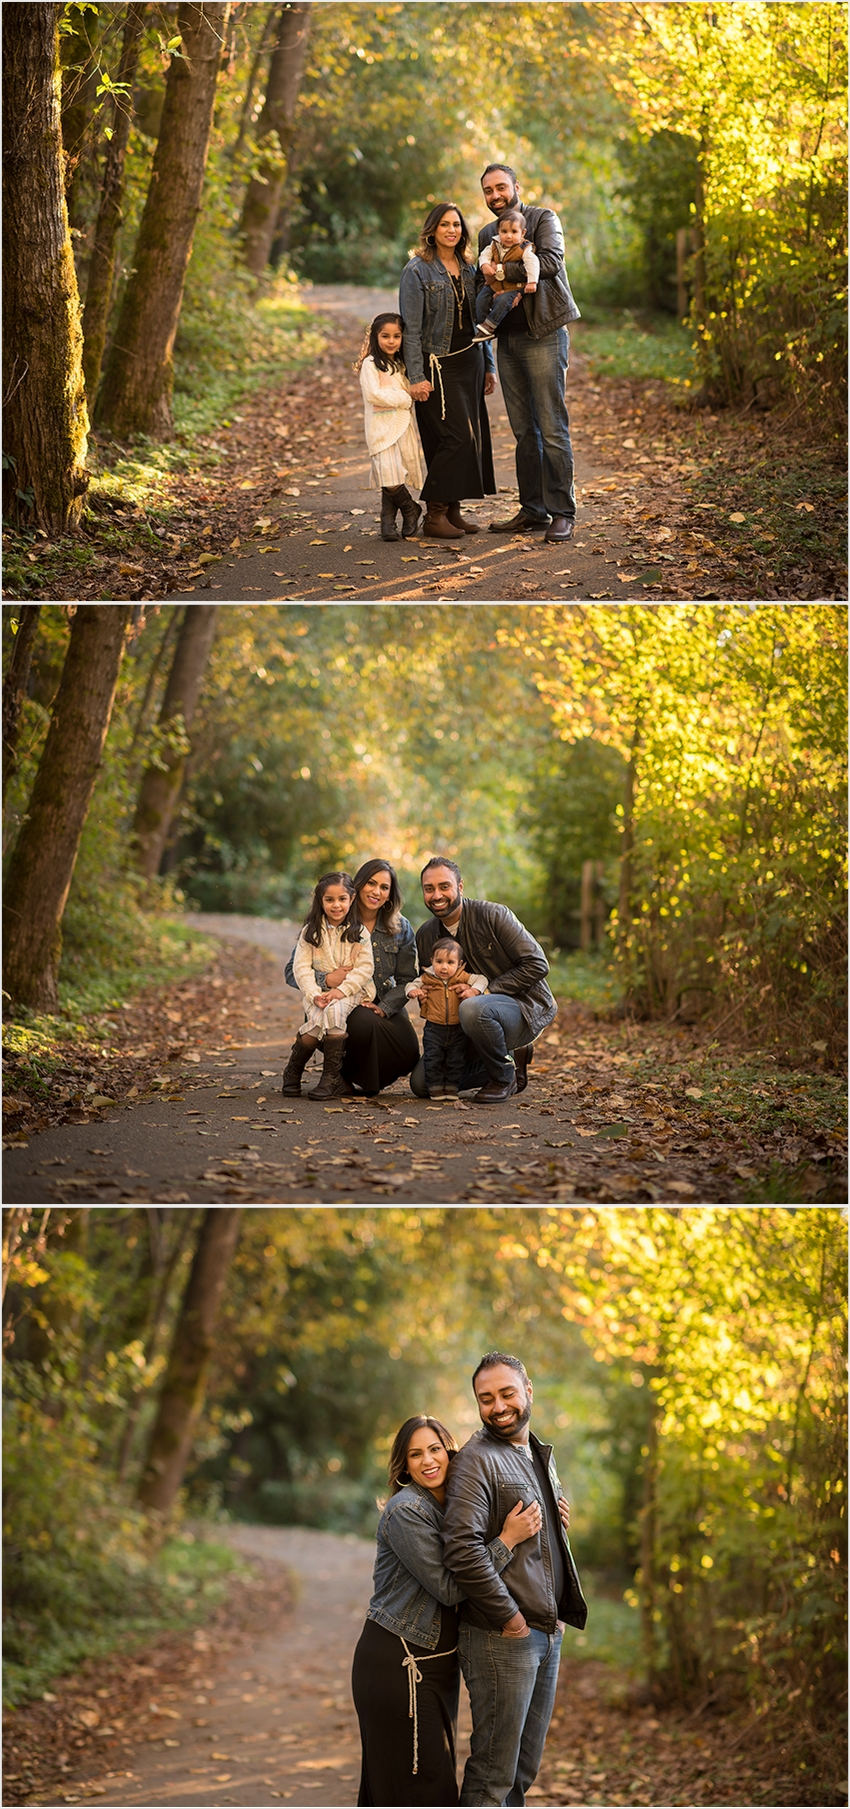 abbotsford-outdoor-family-children-photographer-006-side-6